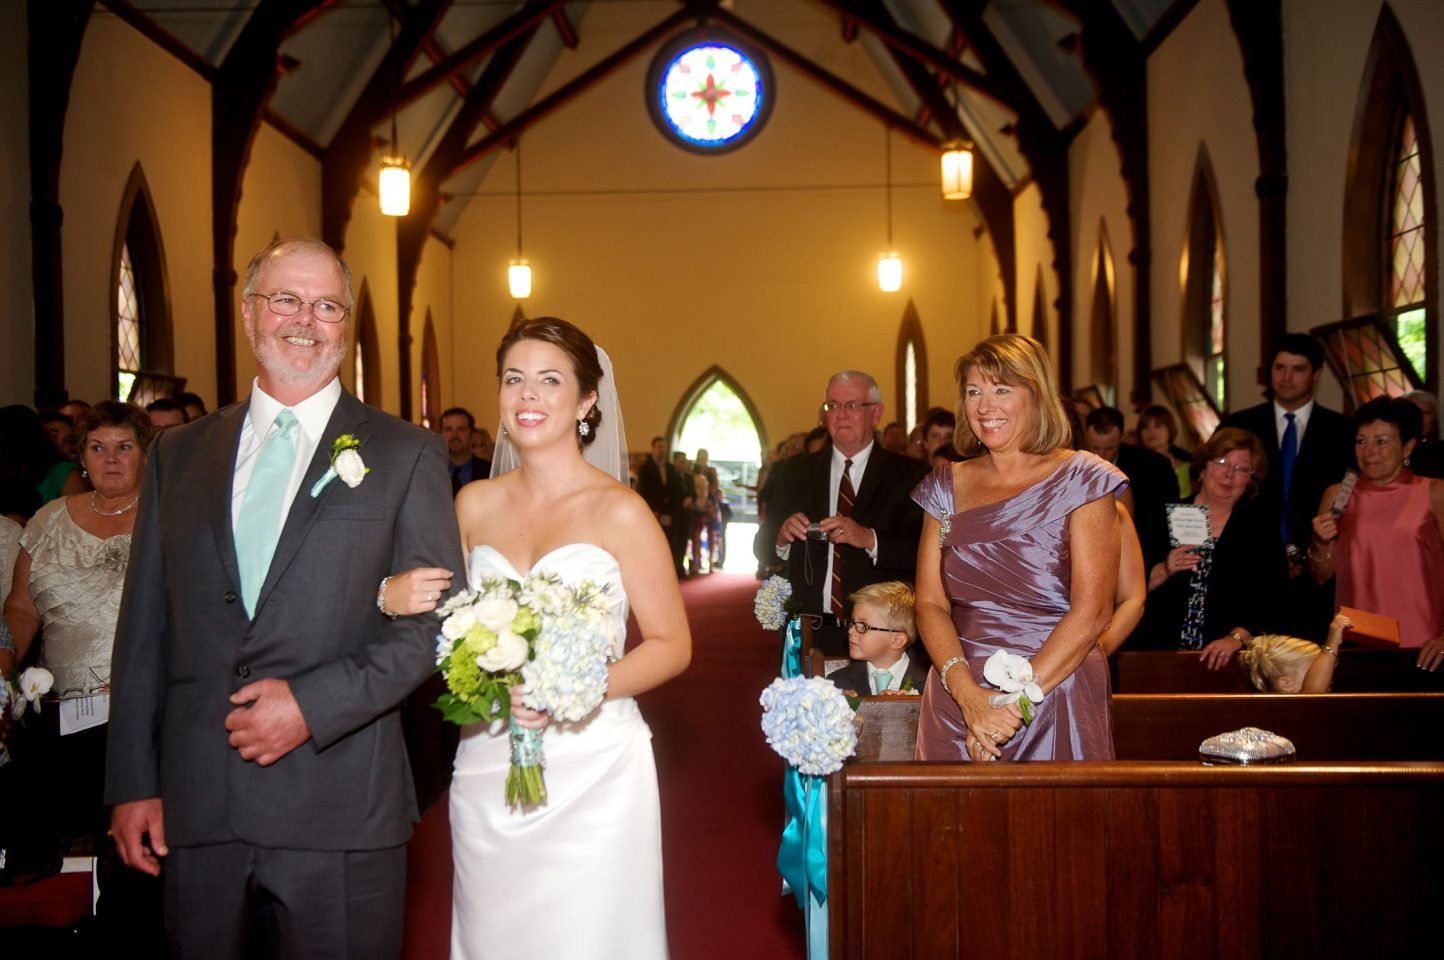 Mom looks on as father and daughter walk down the aisle at Pequote Chapel wedding ceremony